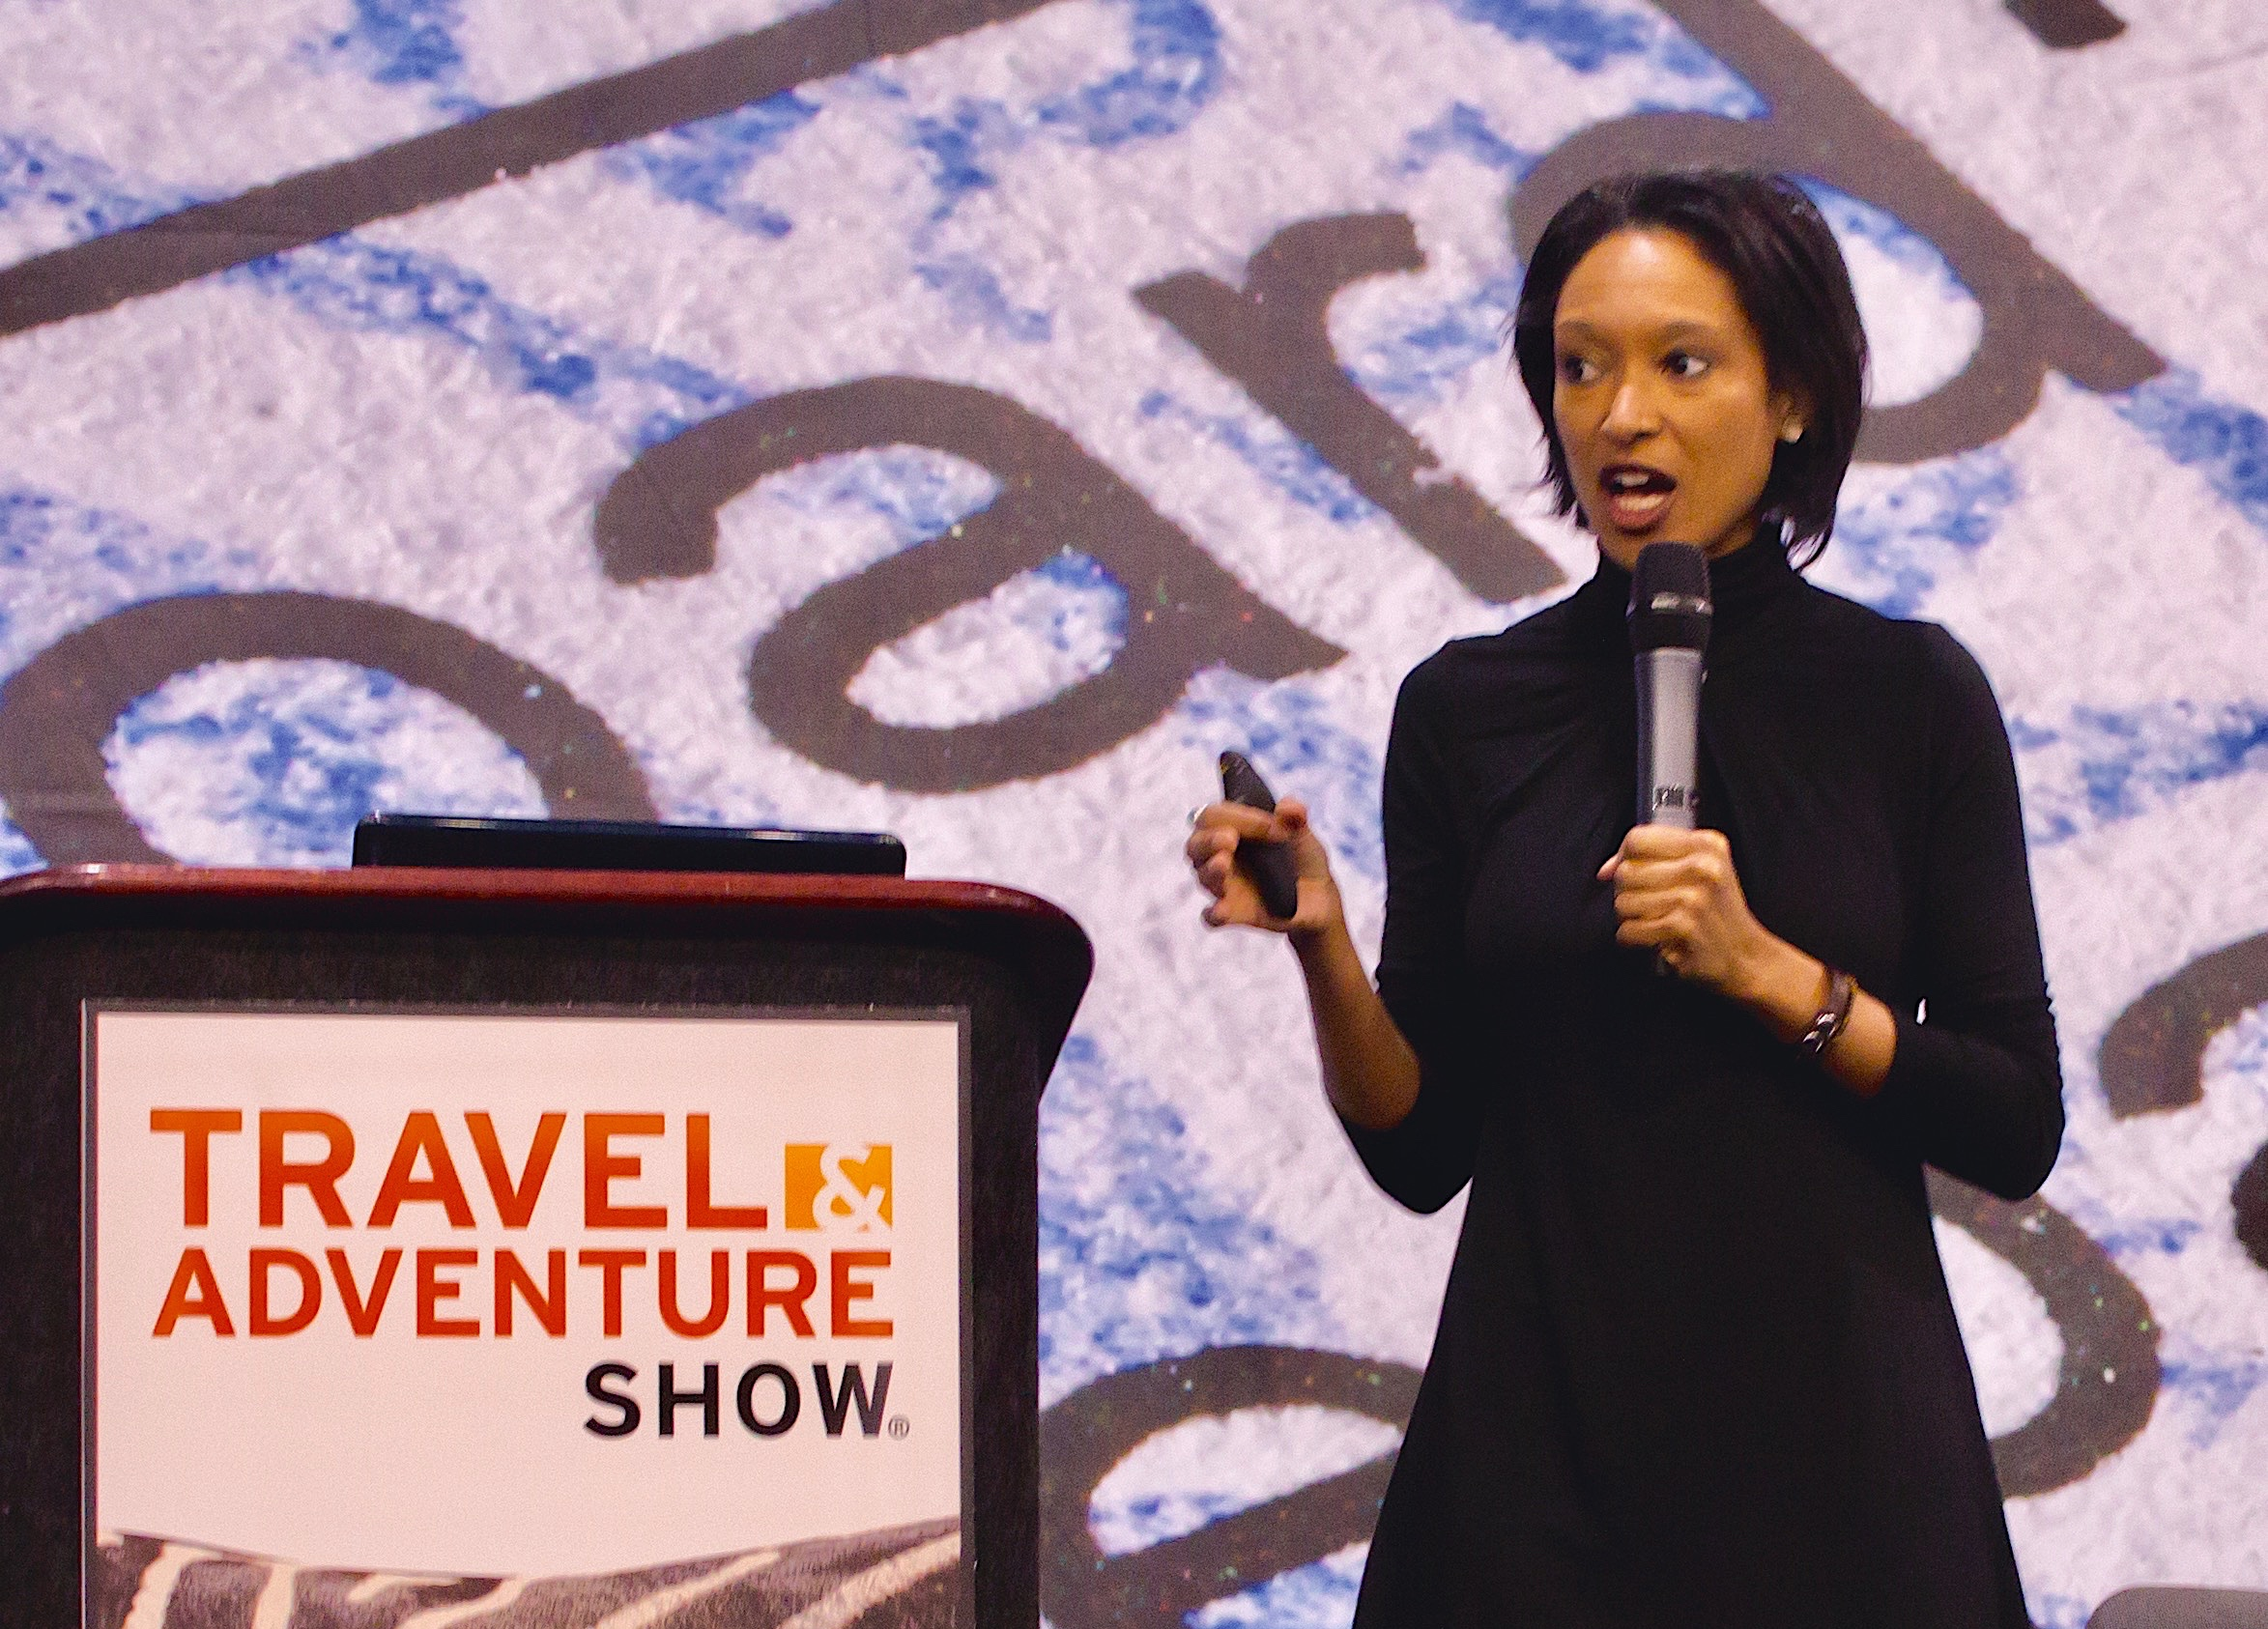 Copy of Sheree M. Mitchell, Founder of Immersa Global